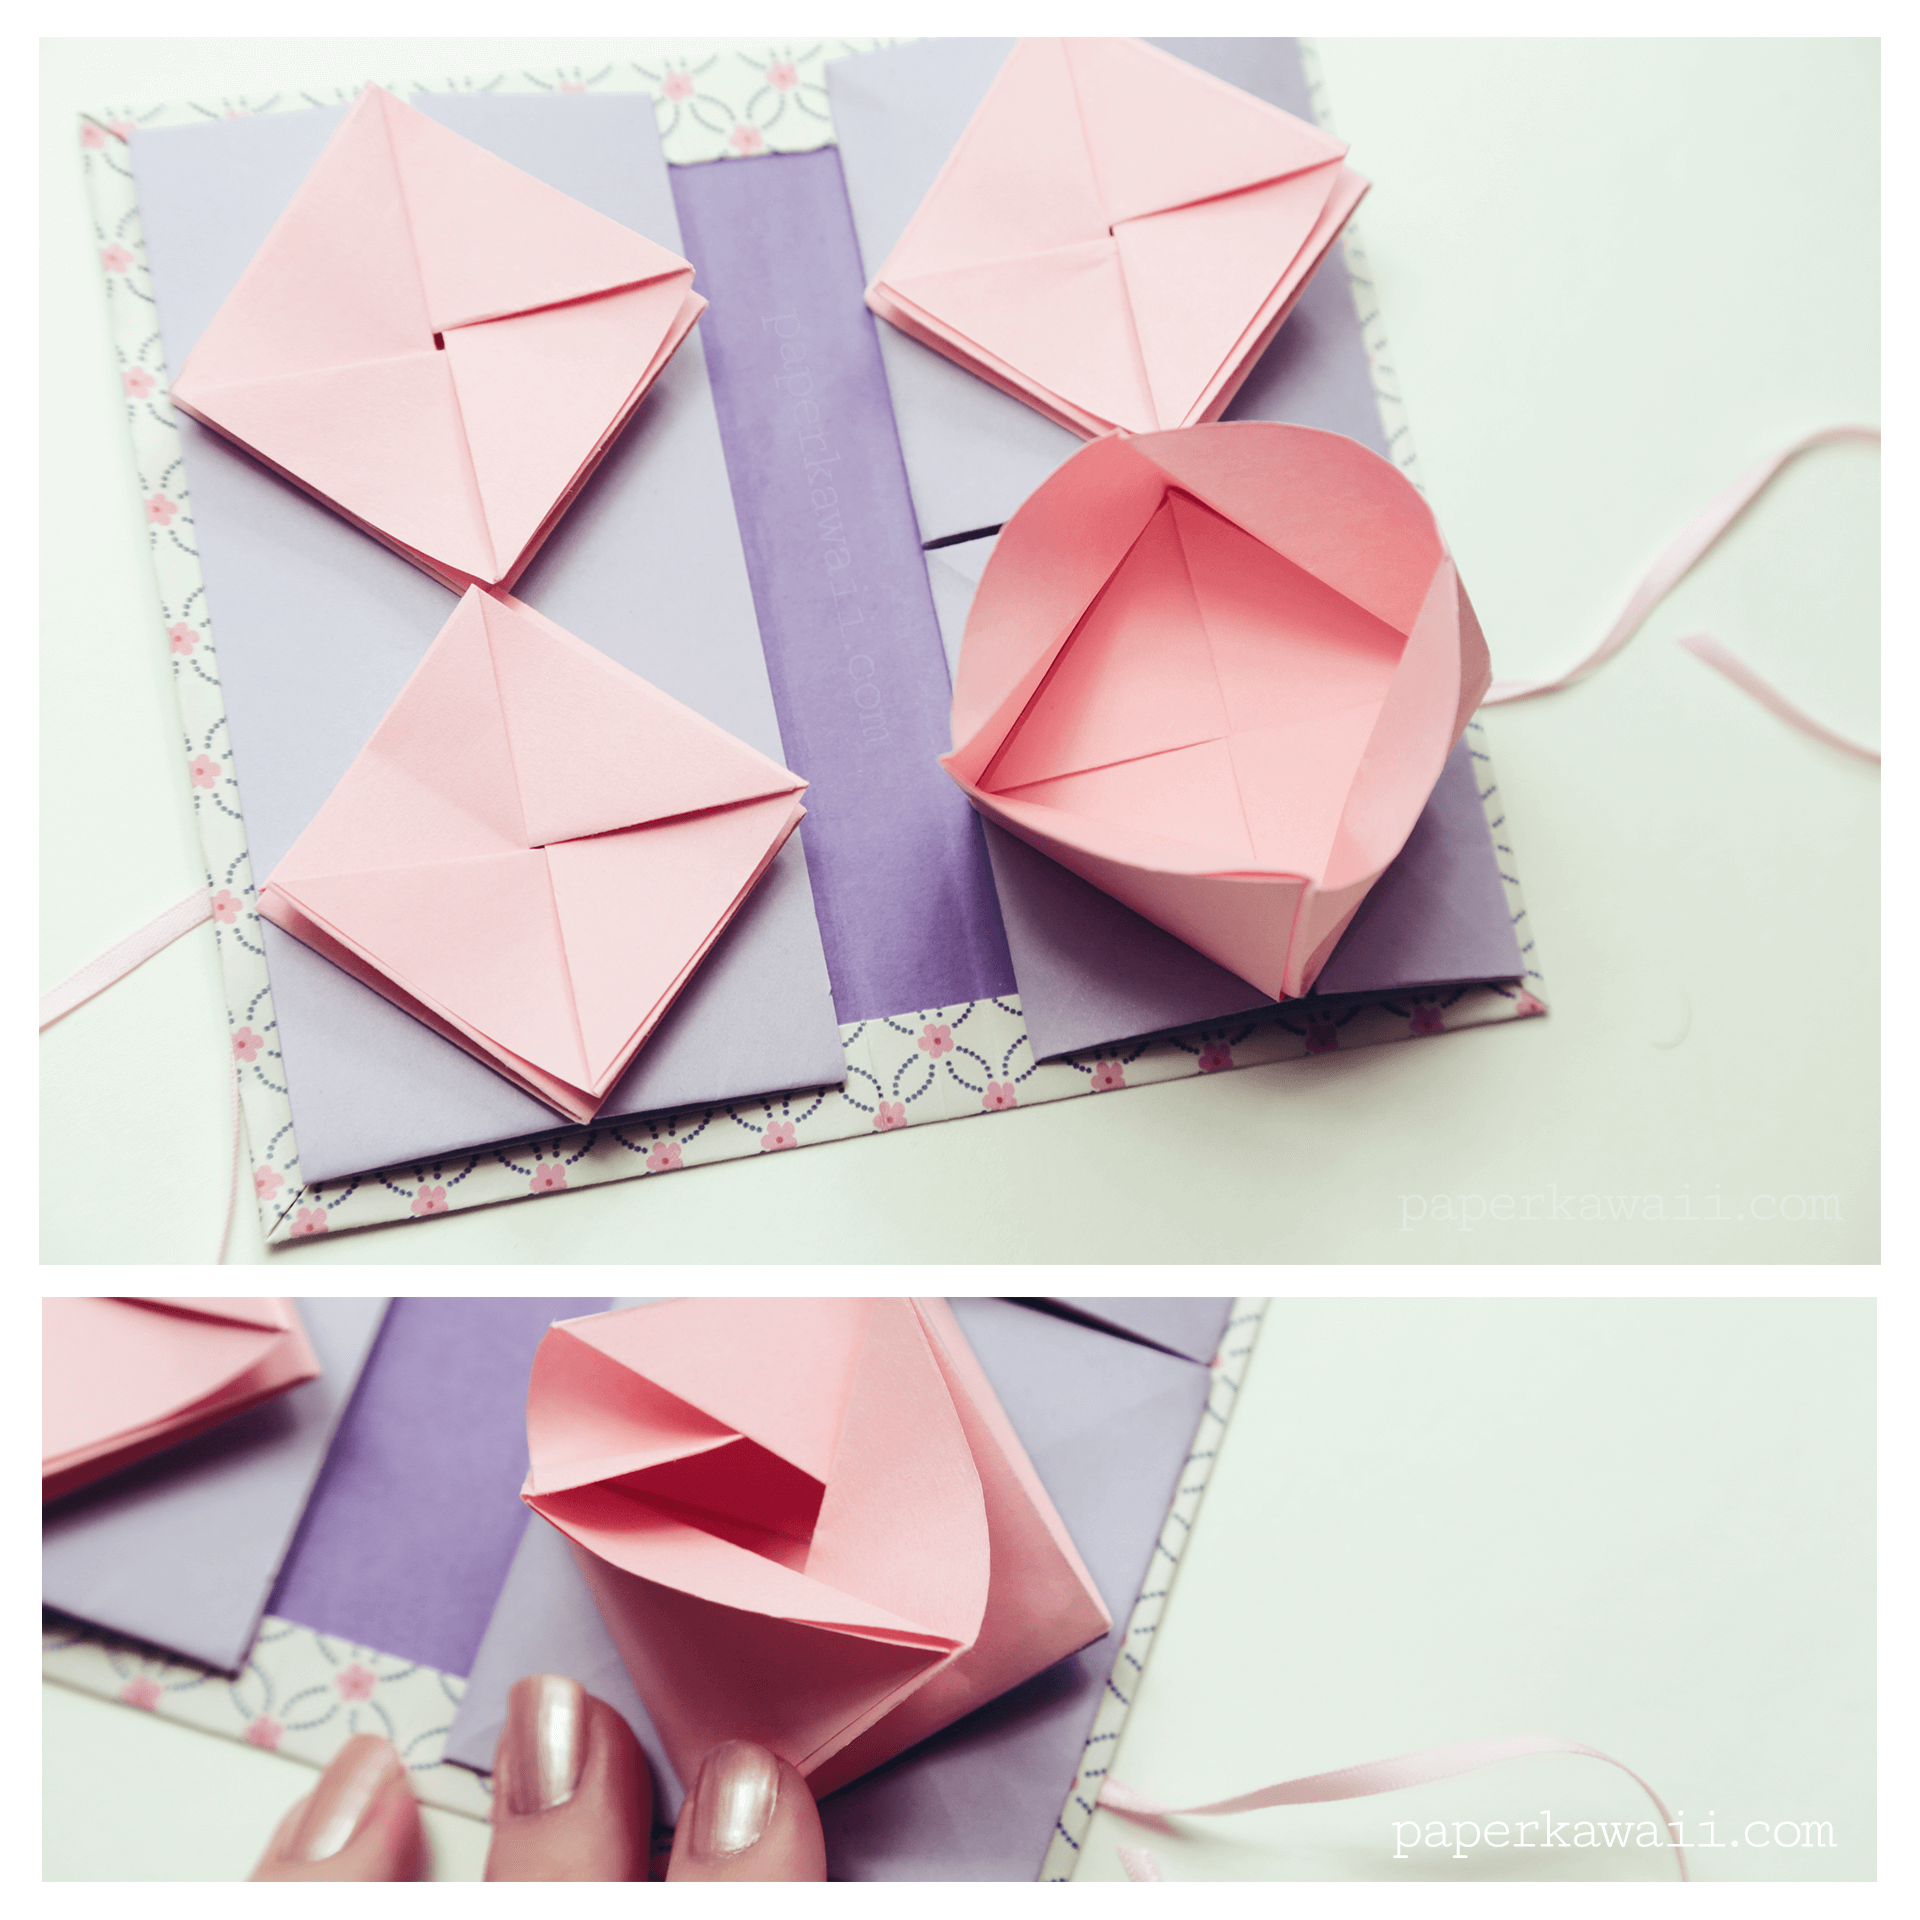 Origami chinese thread book video tutorial paper kawaii - Origami paper tutorial ...